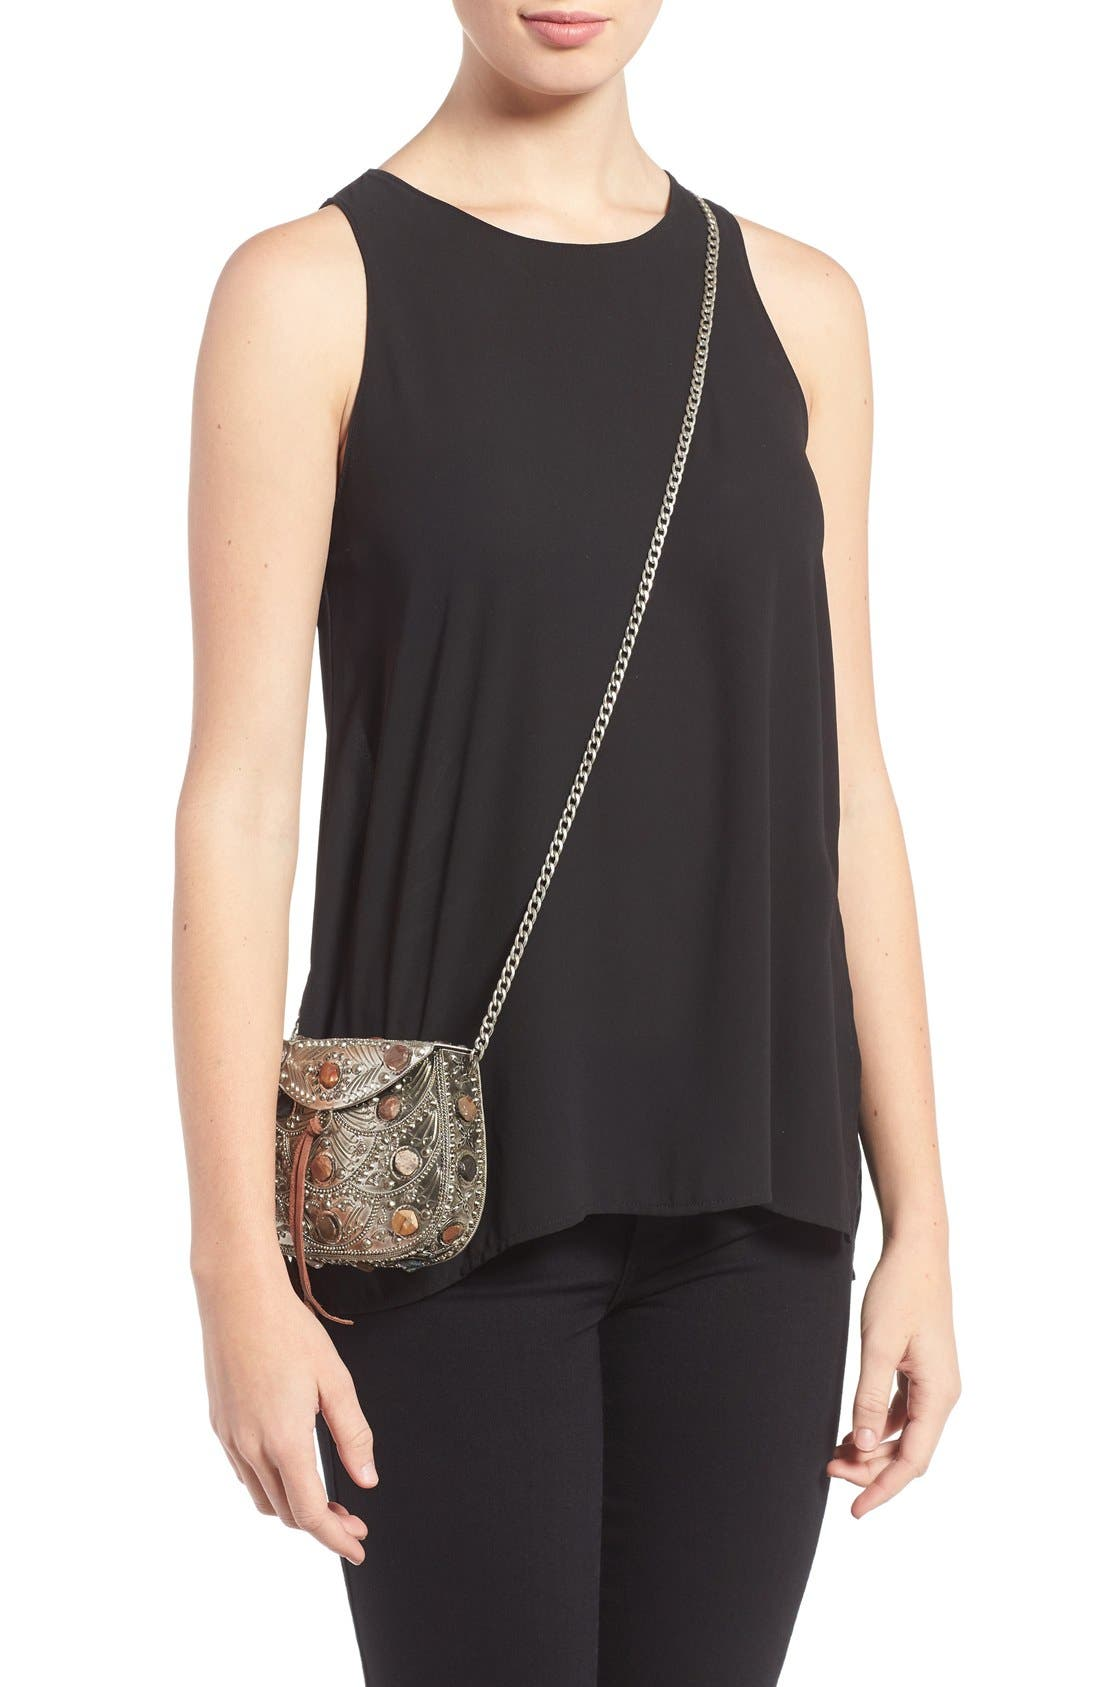 SAM EDELMAN,                             Mini Thana Metal Crossbody Bag,                             Alternate thumbnail 2, color,                             044